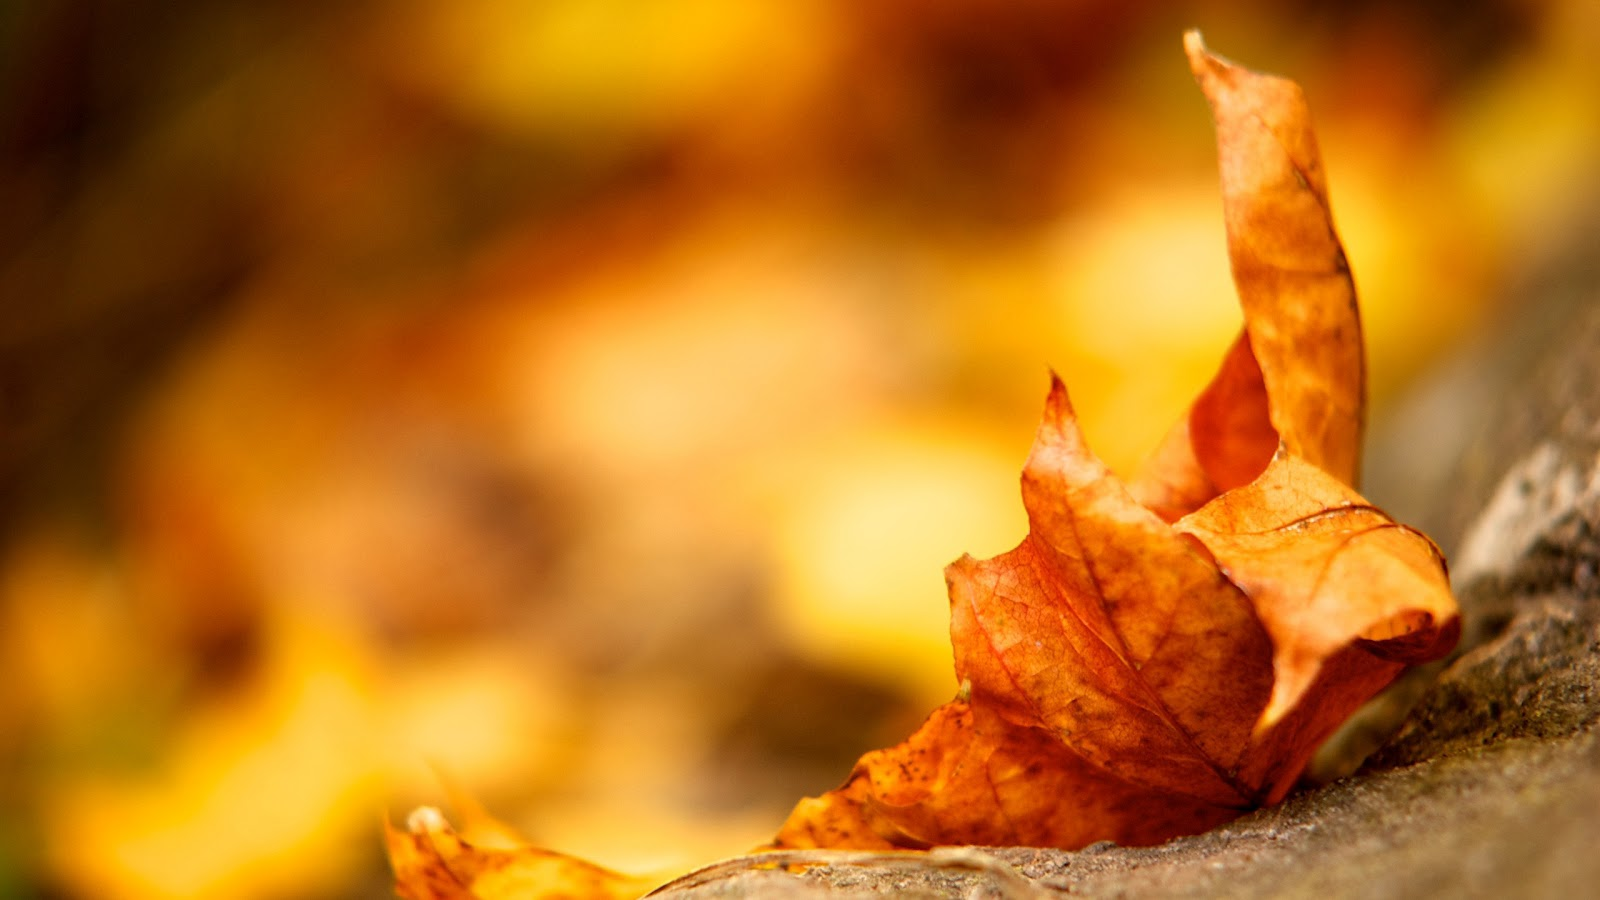 Fall Leaf Wallpaper - Hd Wallpapers Of Autumn Leaf , HD Wallpaper & Backgrounds